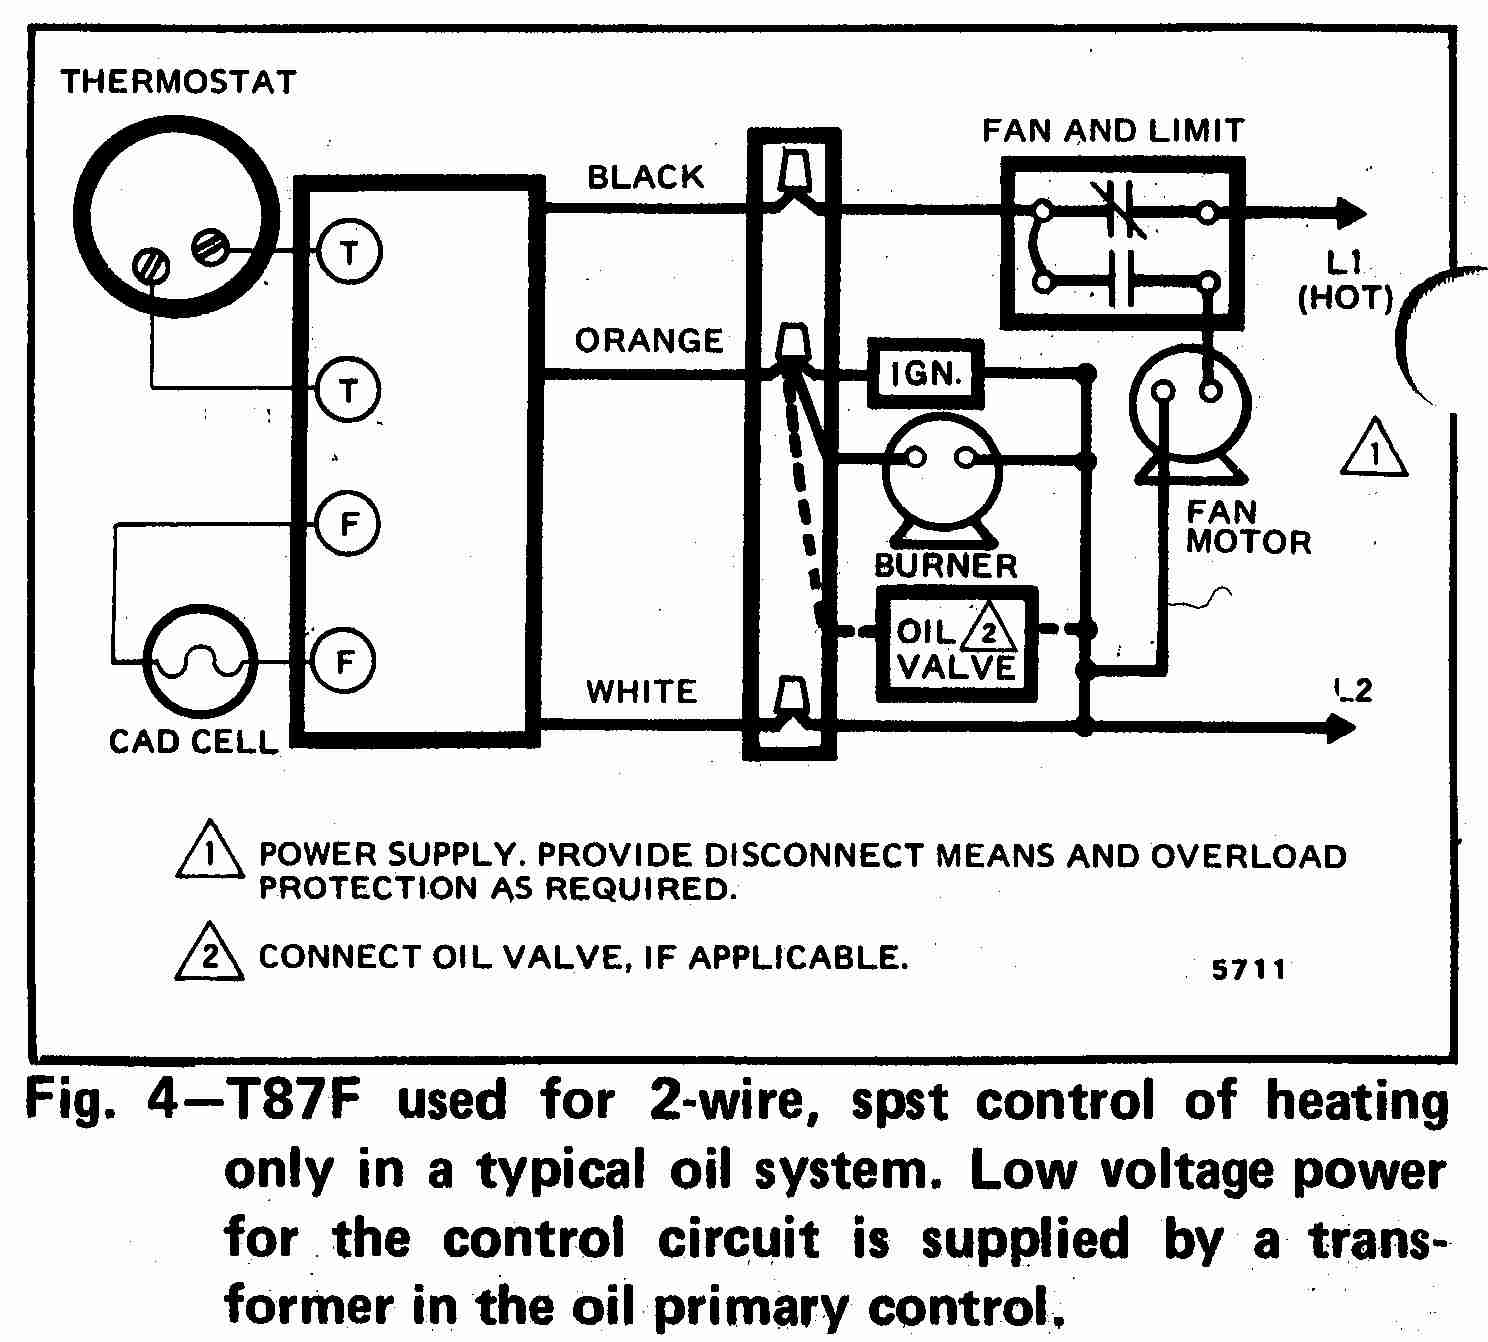 Honeywell Control Diagram Wiring Diagrams Access Room Thermostat For Hvac Systems Rh Inspectapedia Com Boiler